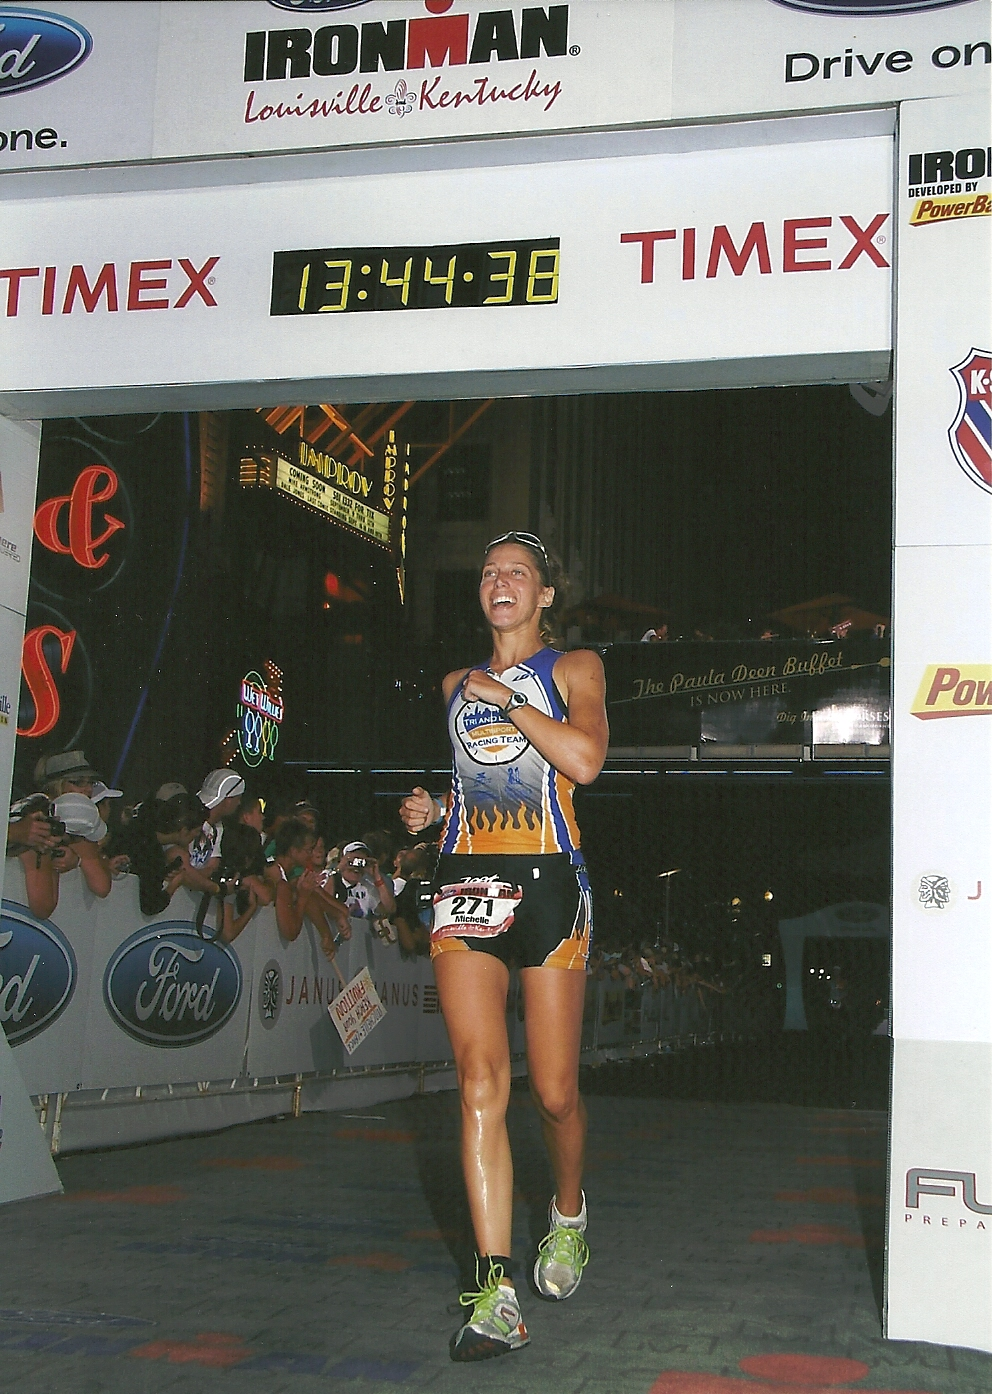 Ironman Reflection: Anything is possible